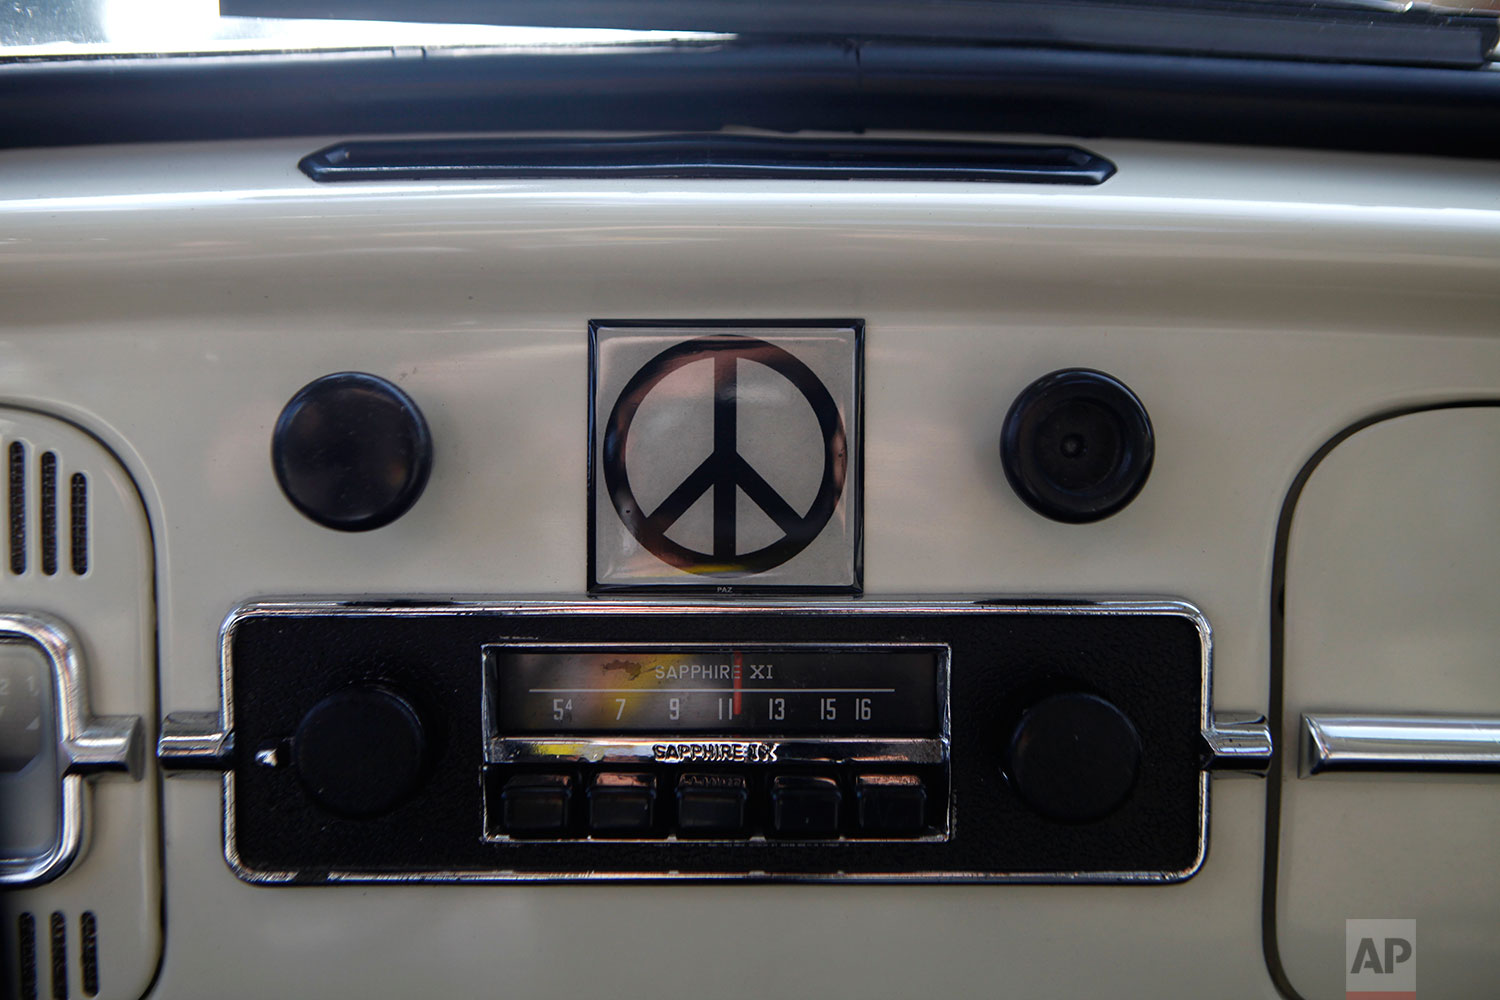 The inside of a 1967 classic Volkswagen beetle adorned with a peace sign at Driver's Volks event in Mexico City, Aug. 16, 2015. (AP Photo/Sofia Jaramillo)